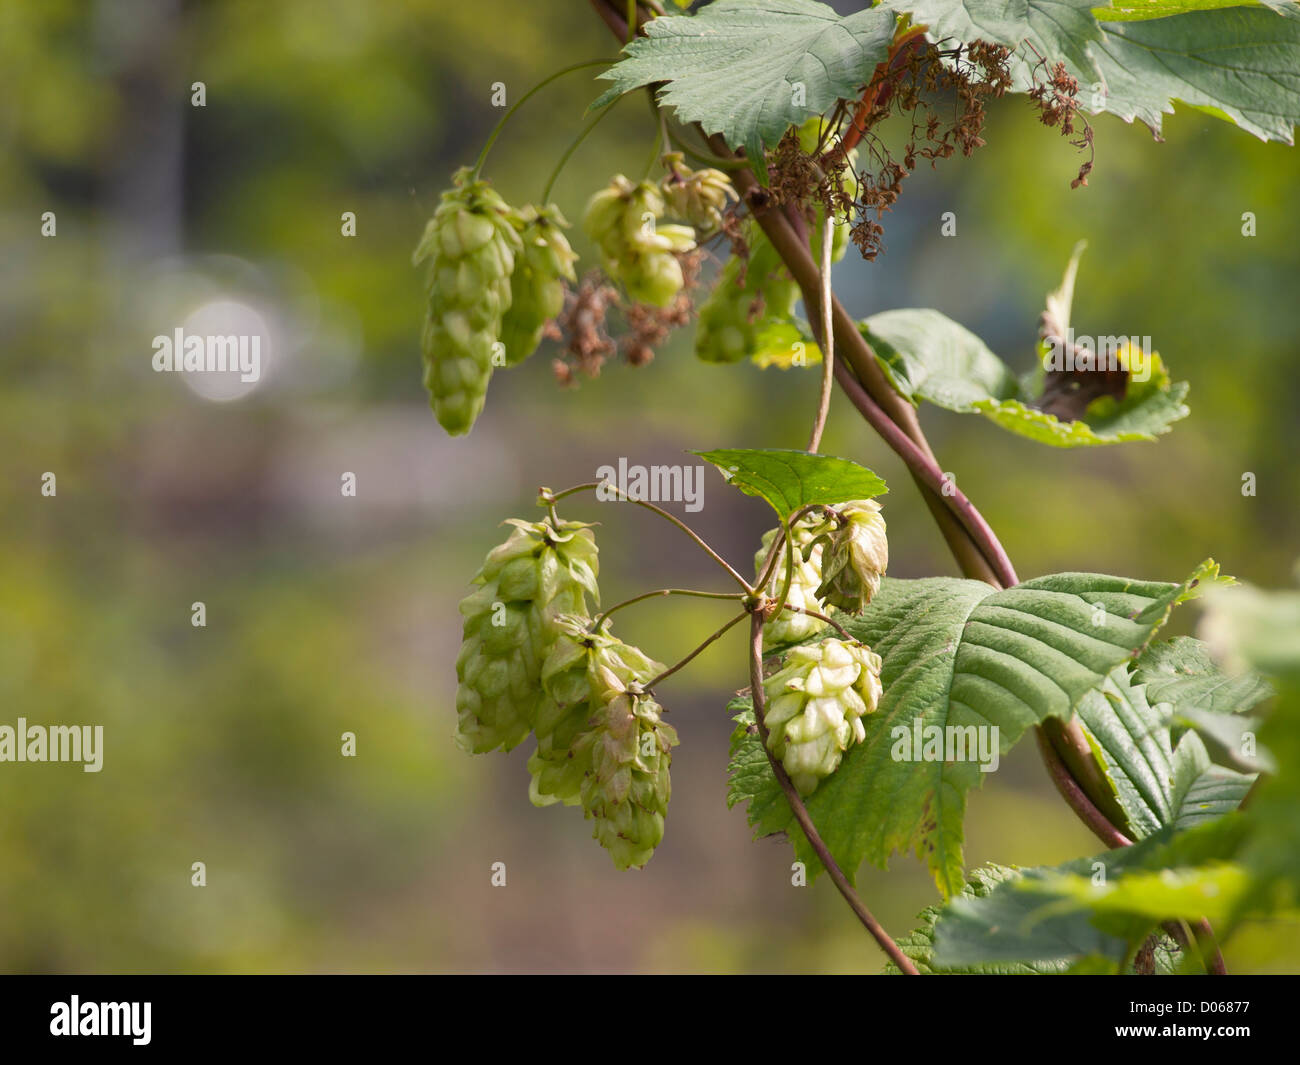 Close up of flowering hops with cones - Stock Image